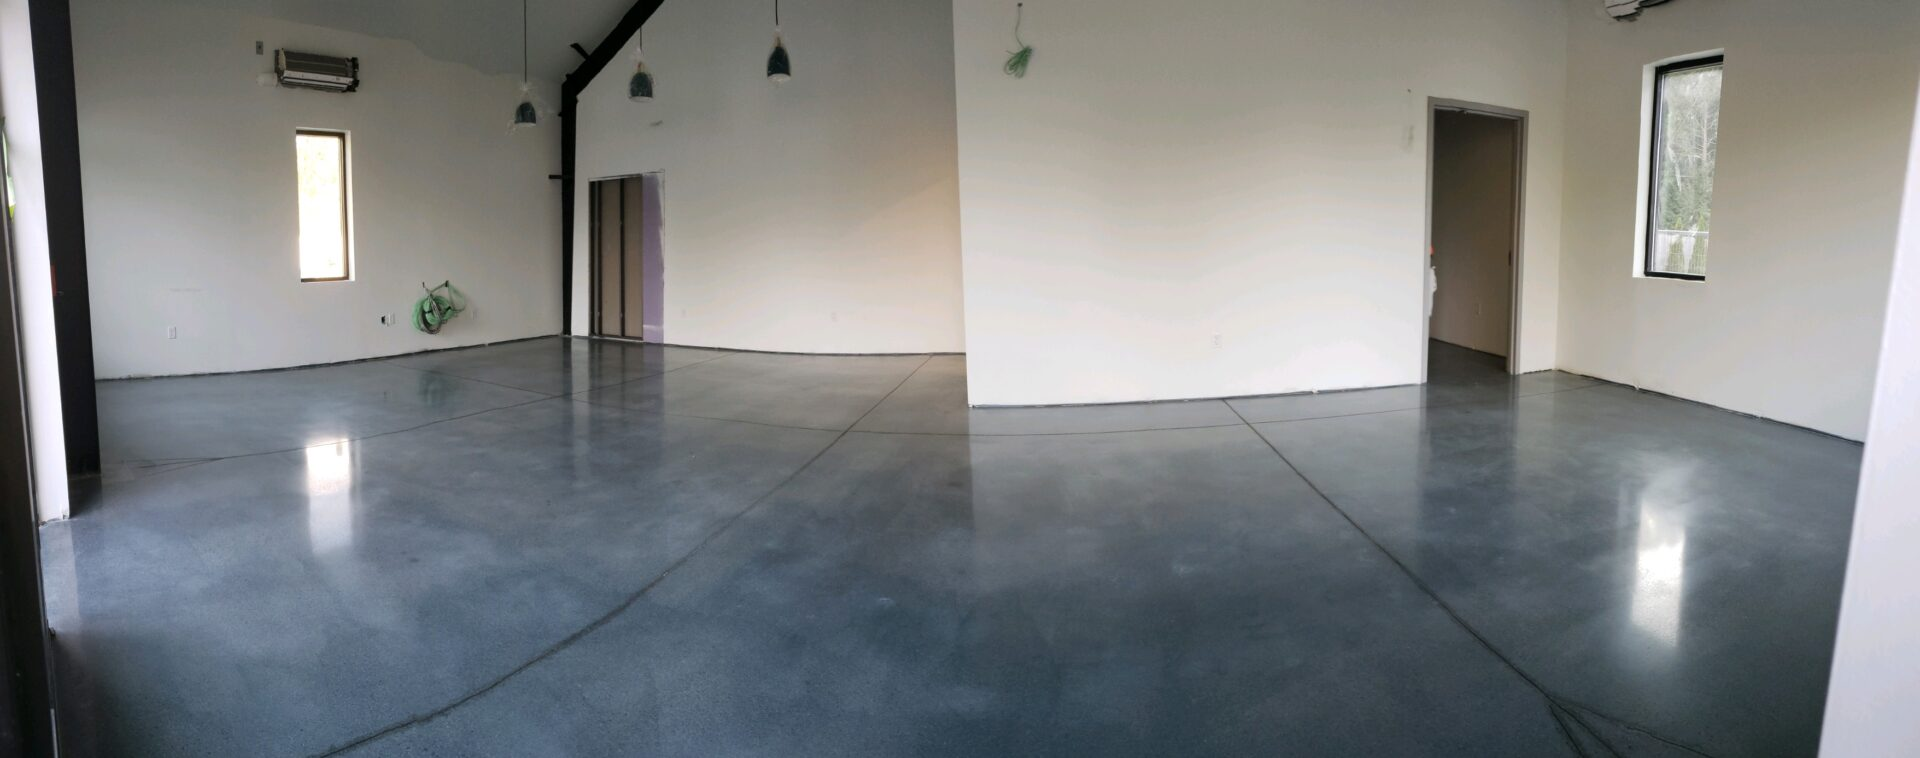 Sweet Dirt Dispensary in Eliot, Me. The floor has been stained, polished and burnished.